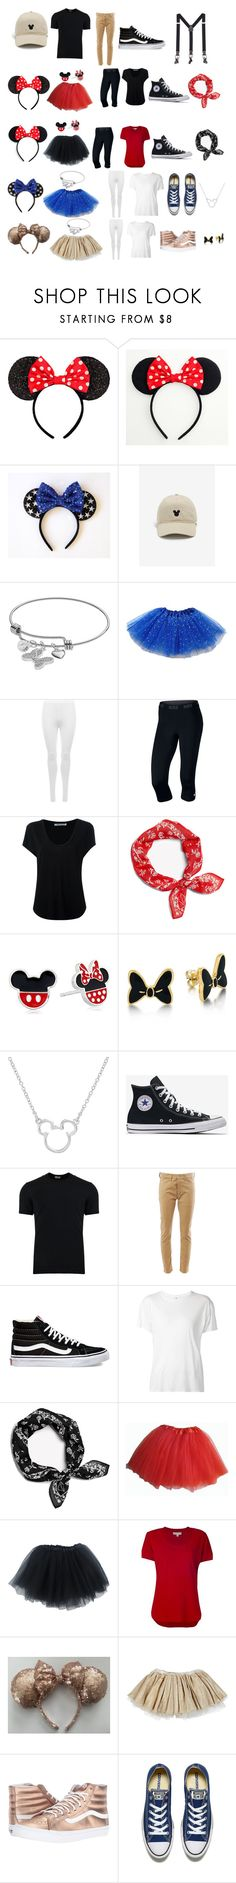 """Disney Outfits"" by ale-needam on Polyvore featuring Disney, WearAll, NIKE, Alexander Wang, rag & bone, Dolce&Gabbana, Junya Watanabe, Vans, R13 and MICHAEL Michael Kors"